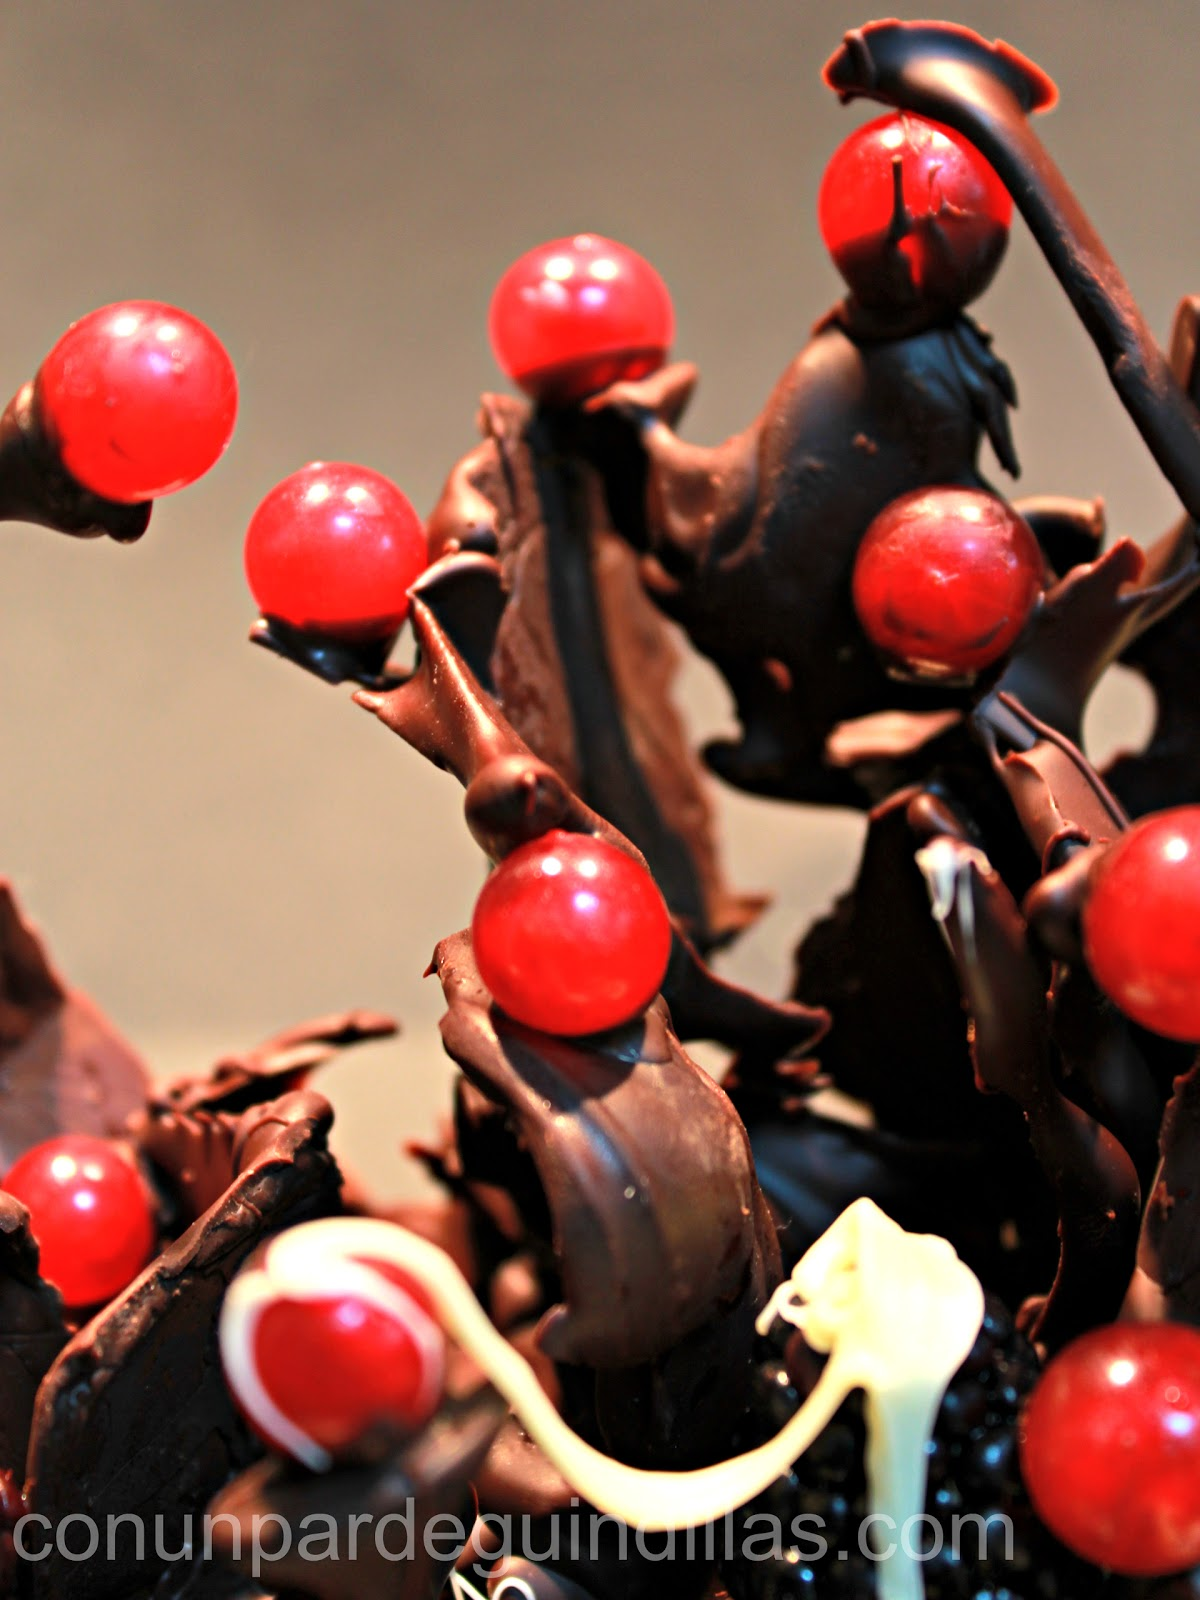 Bosque de chocolate y frutos rojos